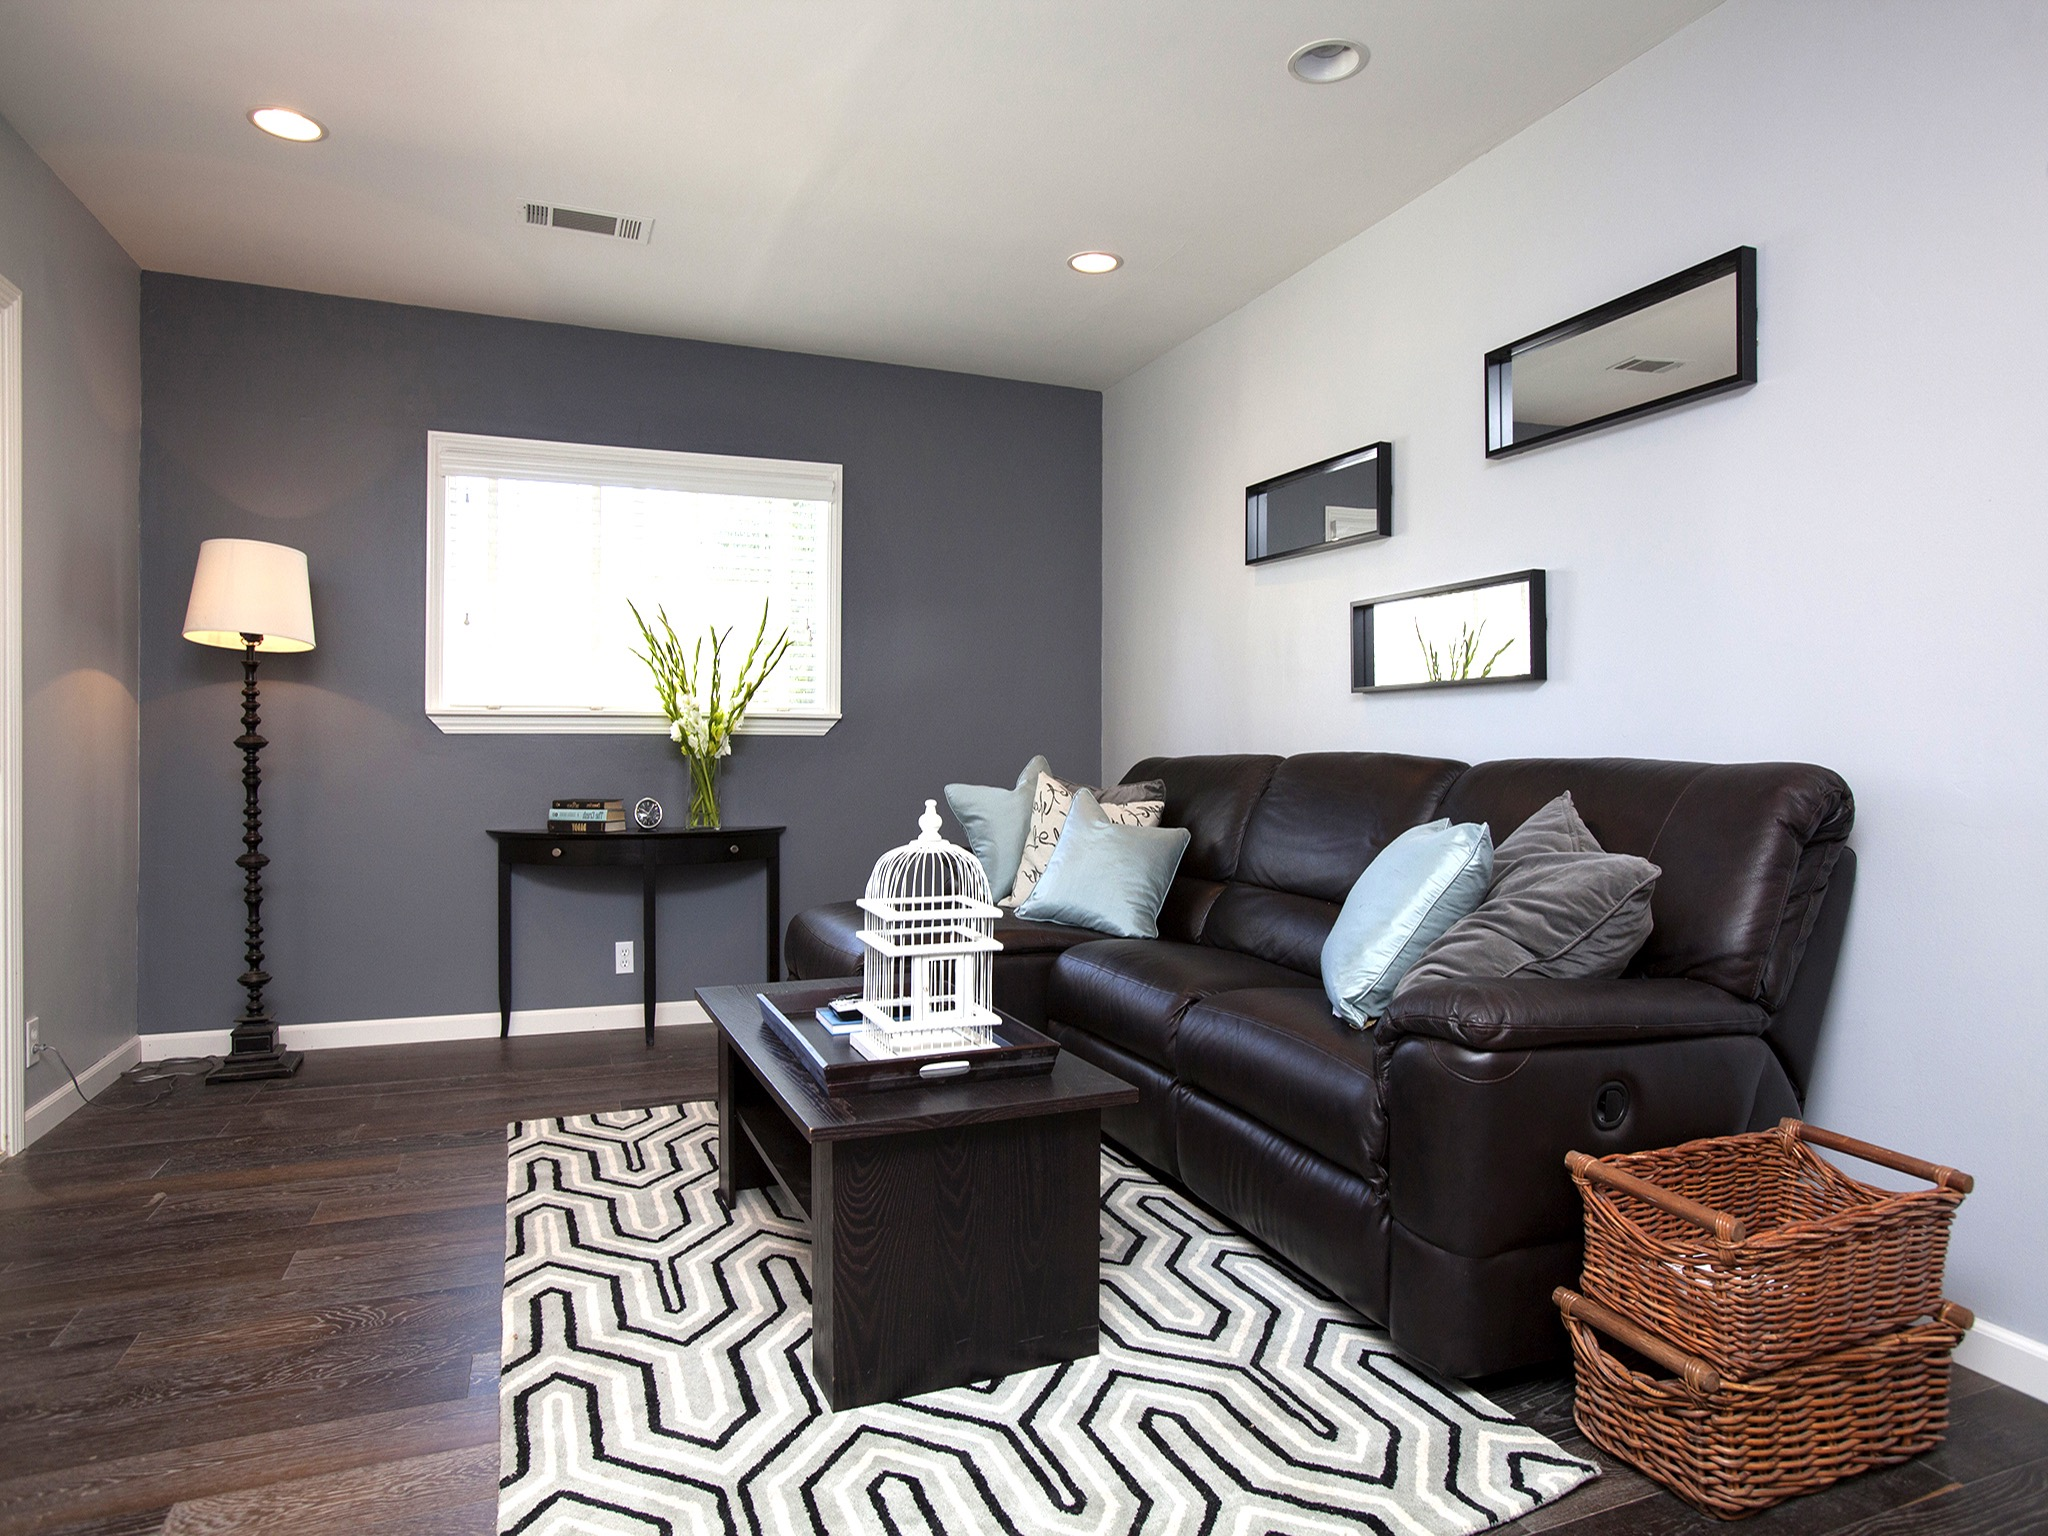 Simple Narrow Living Room With Black Sofa And Carpet (Image 15 of 22)